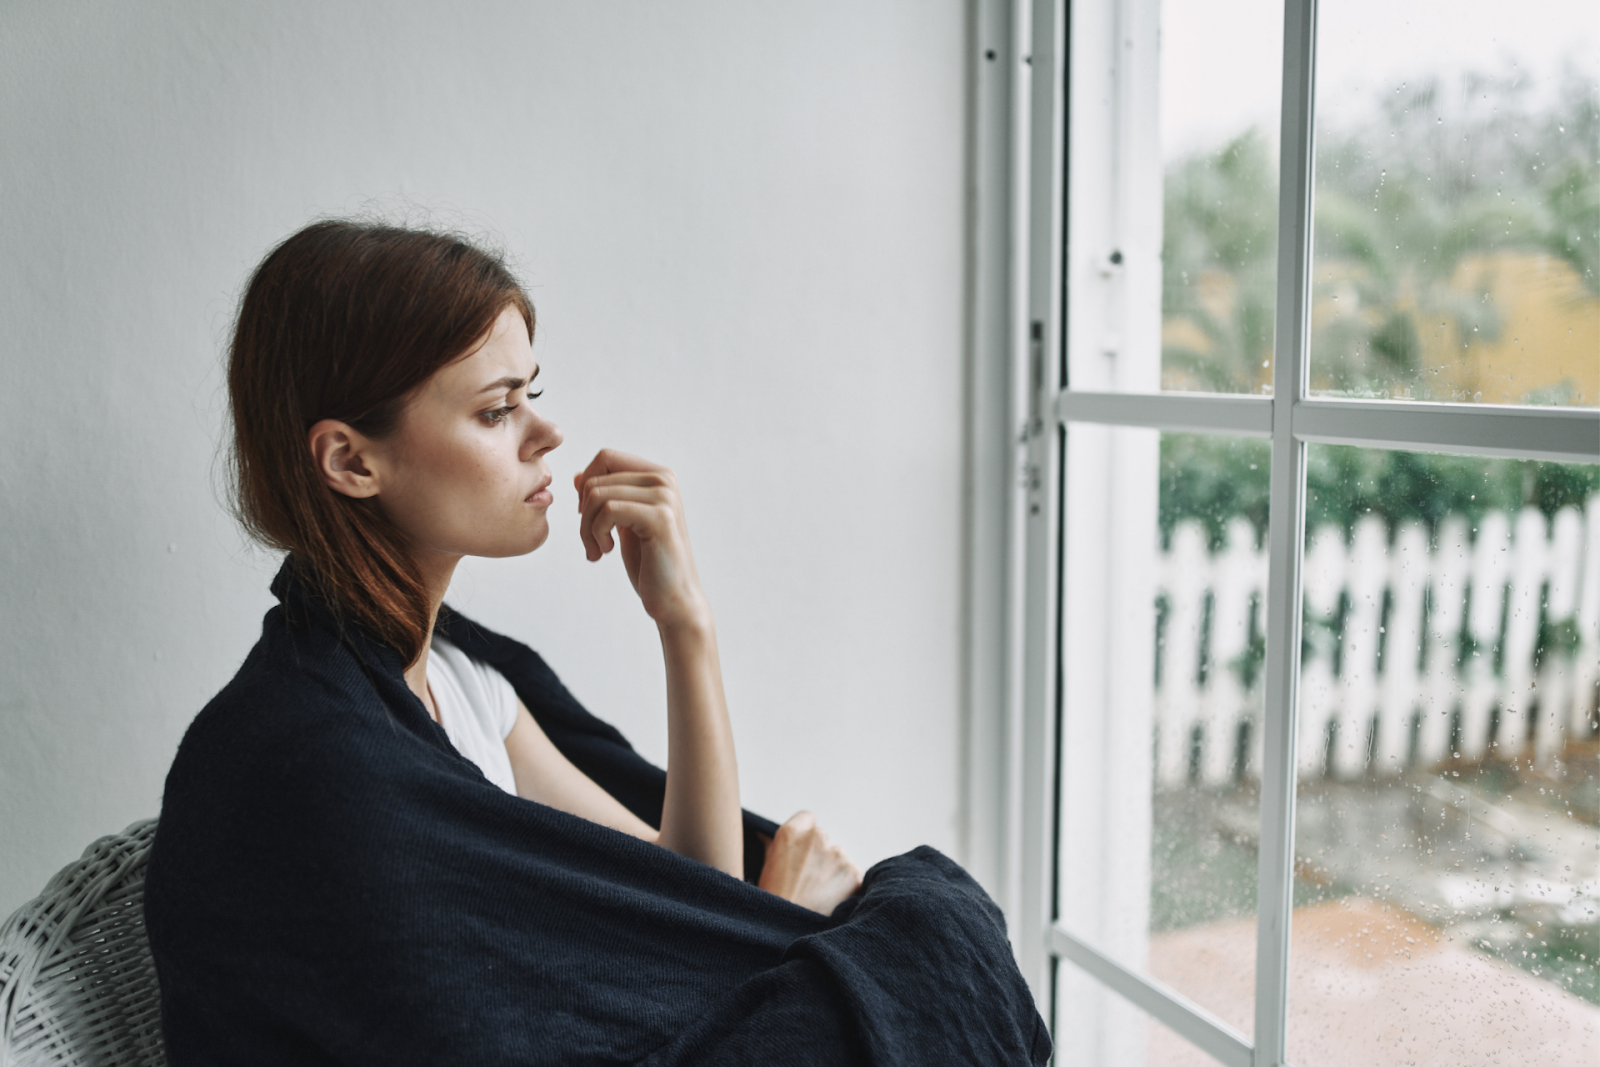 depressed woman sitting by a window